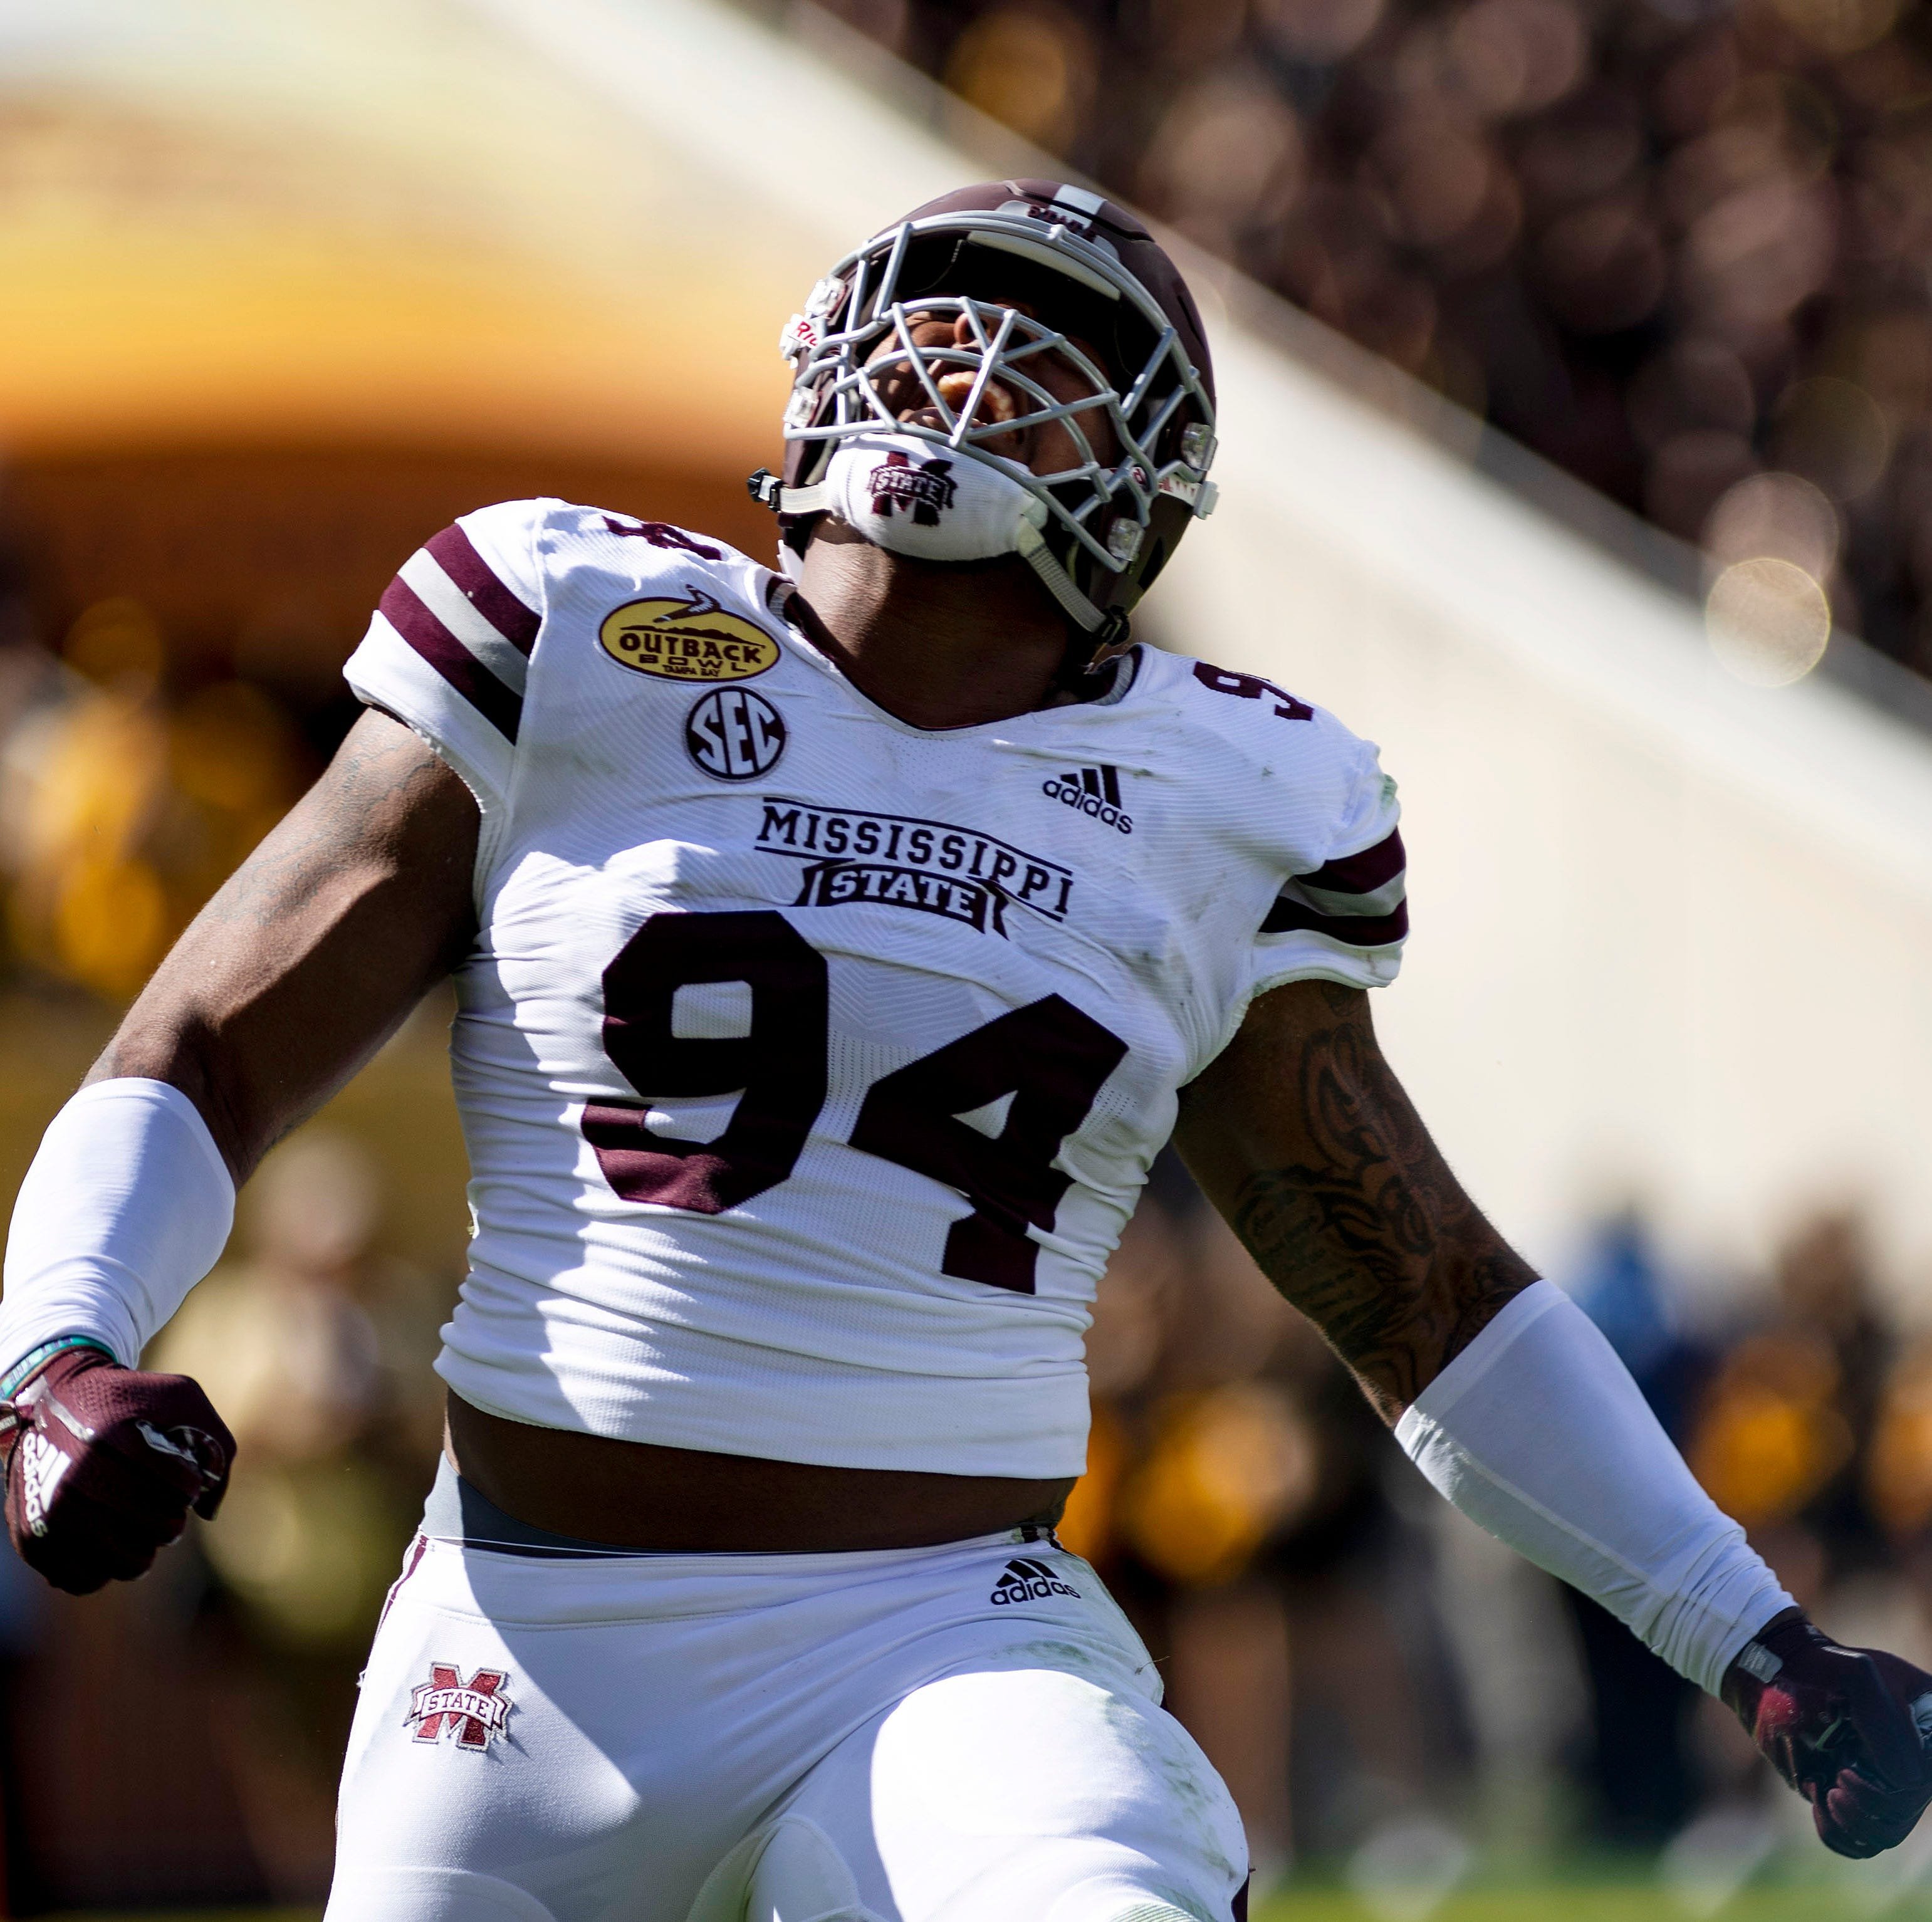 Jeffery Simmons of Mississippi State picked by Tennessee Titans in 2019 NFL Draft